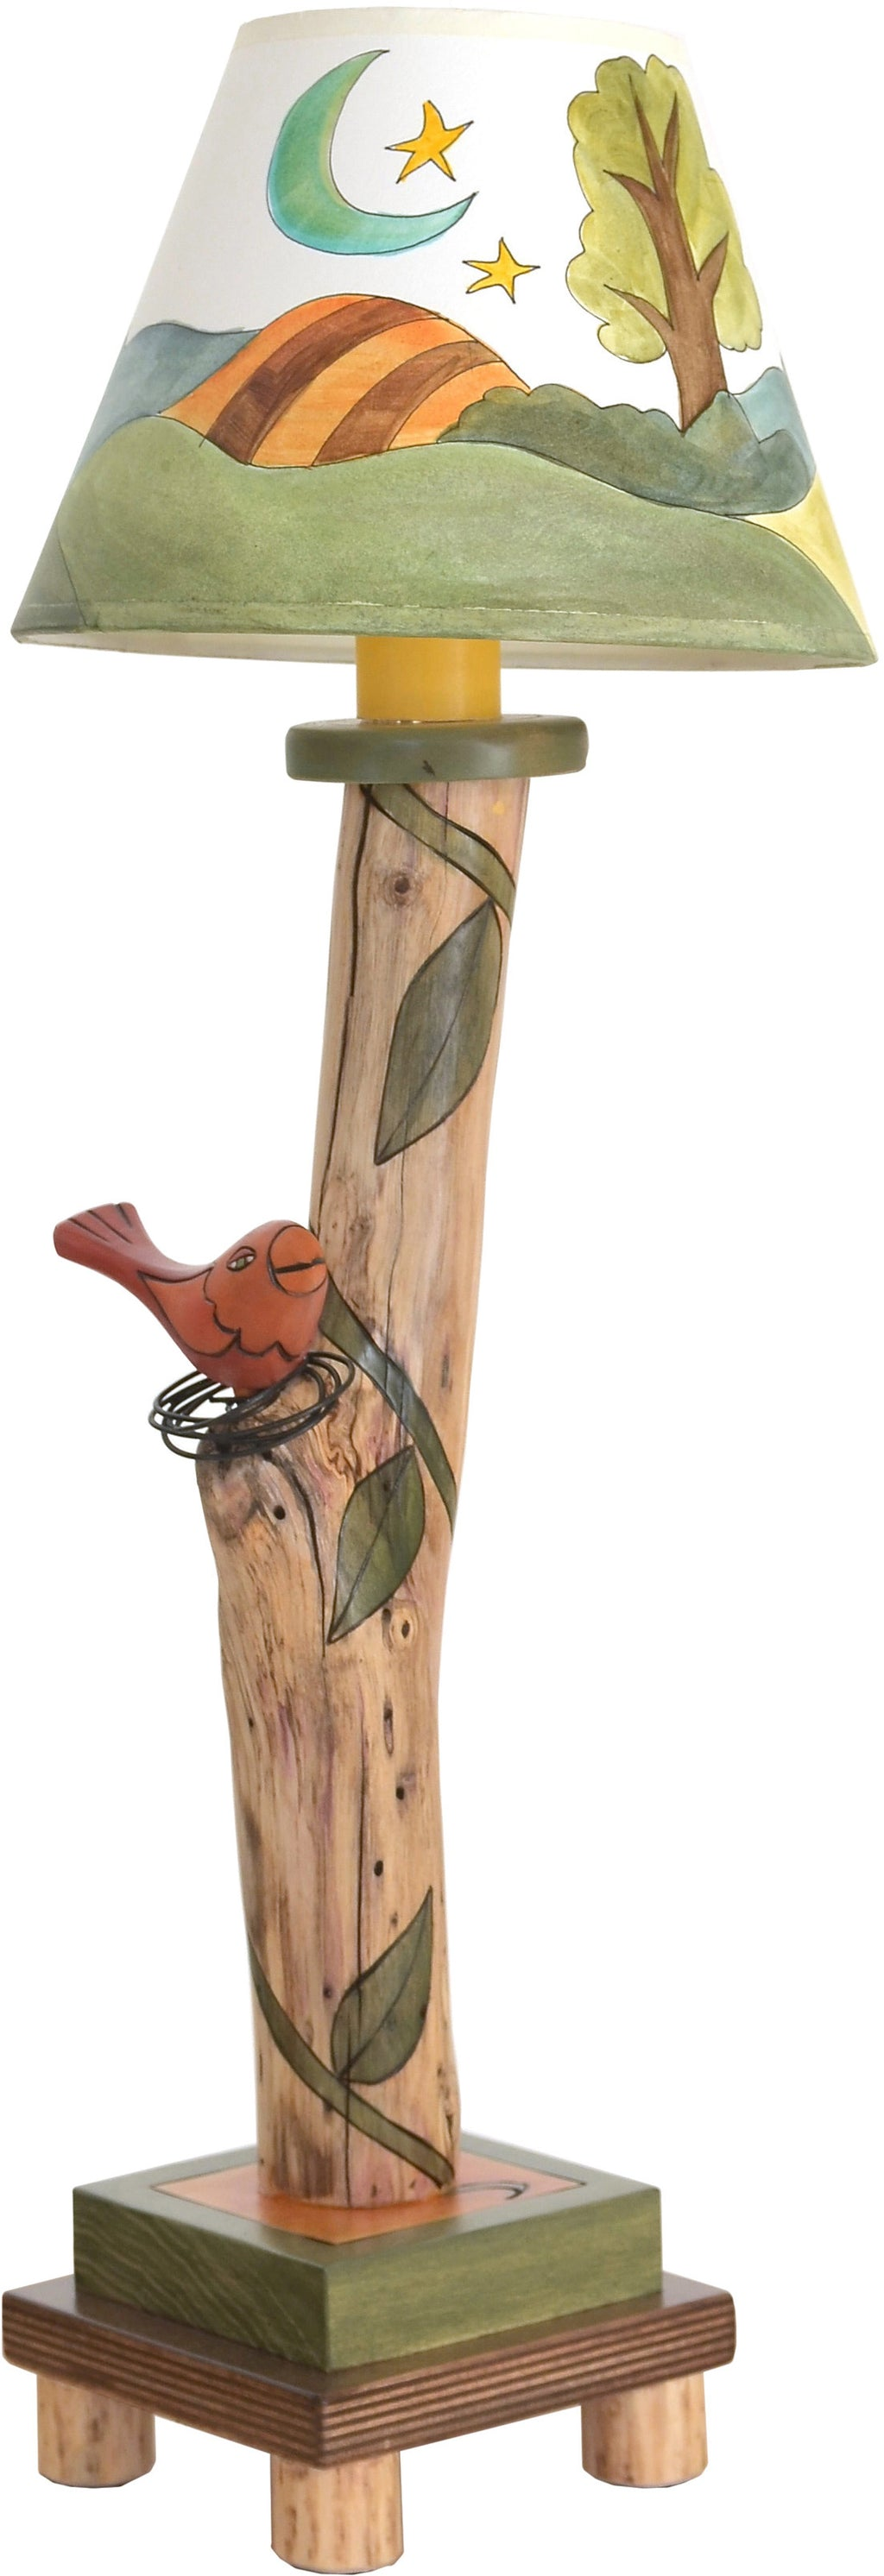 Log Candlestick Lamp –  Cute log lamp with a landscape motif and hand-sculpted bird